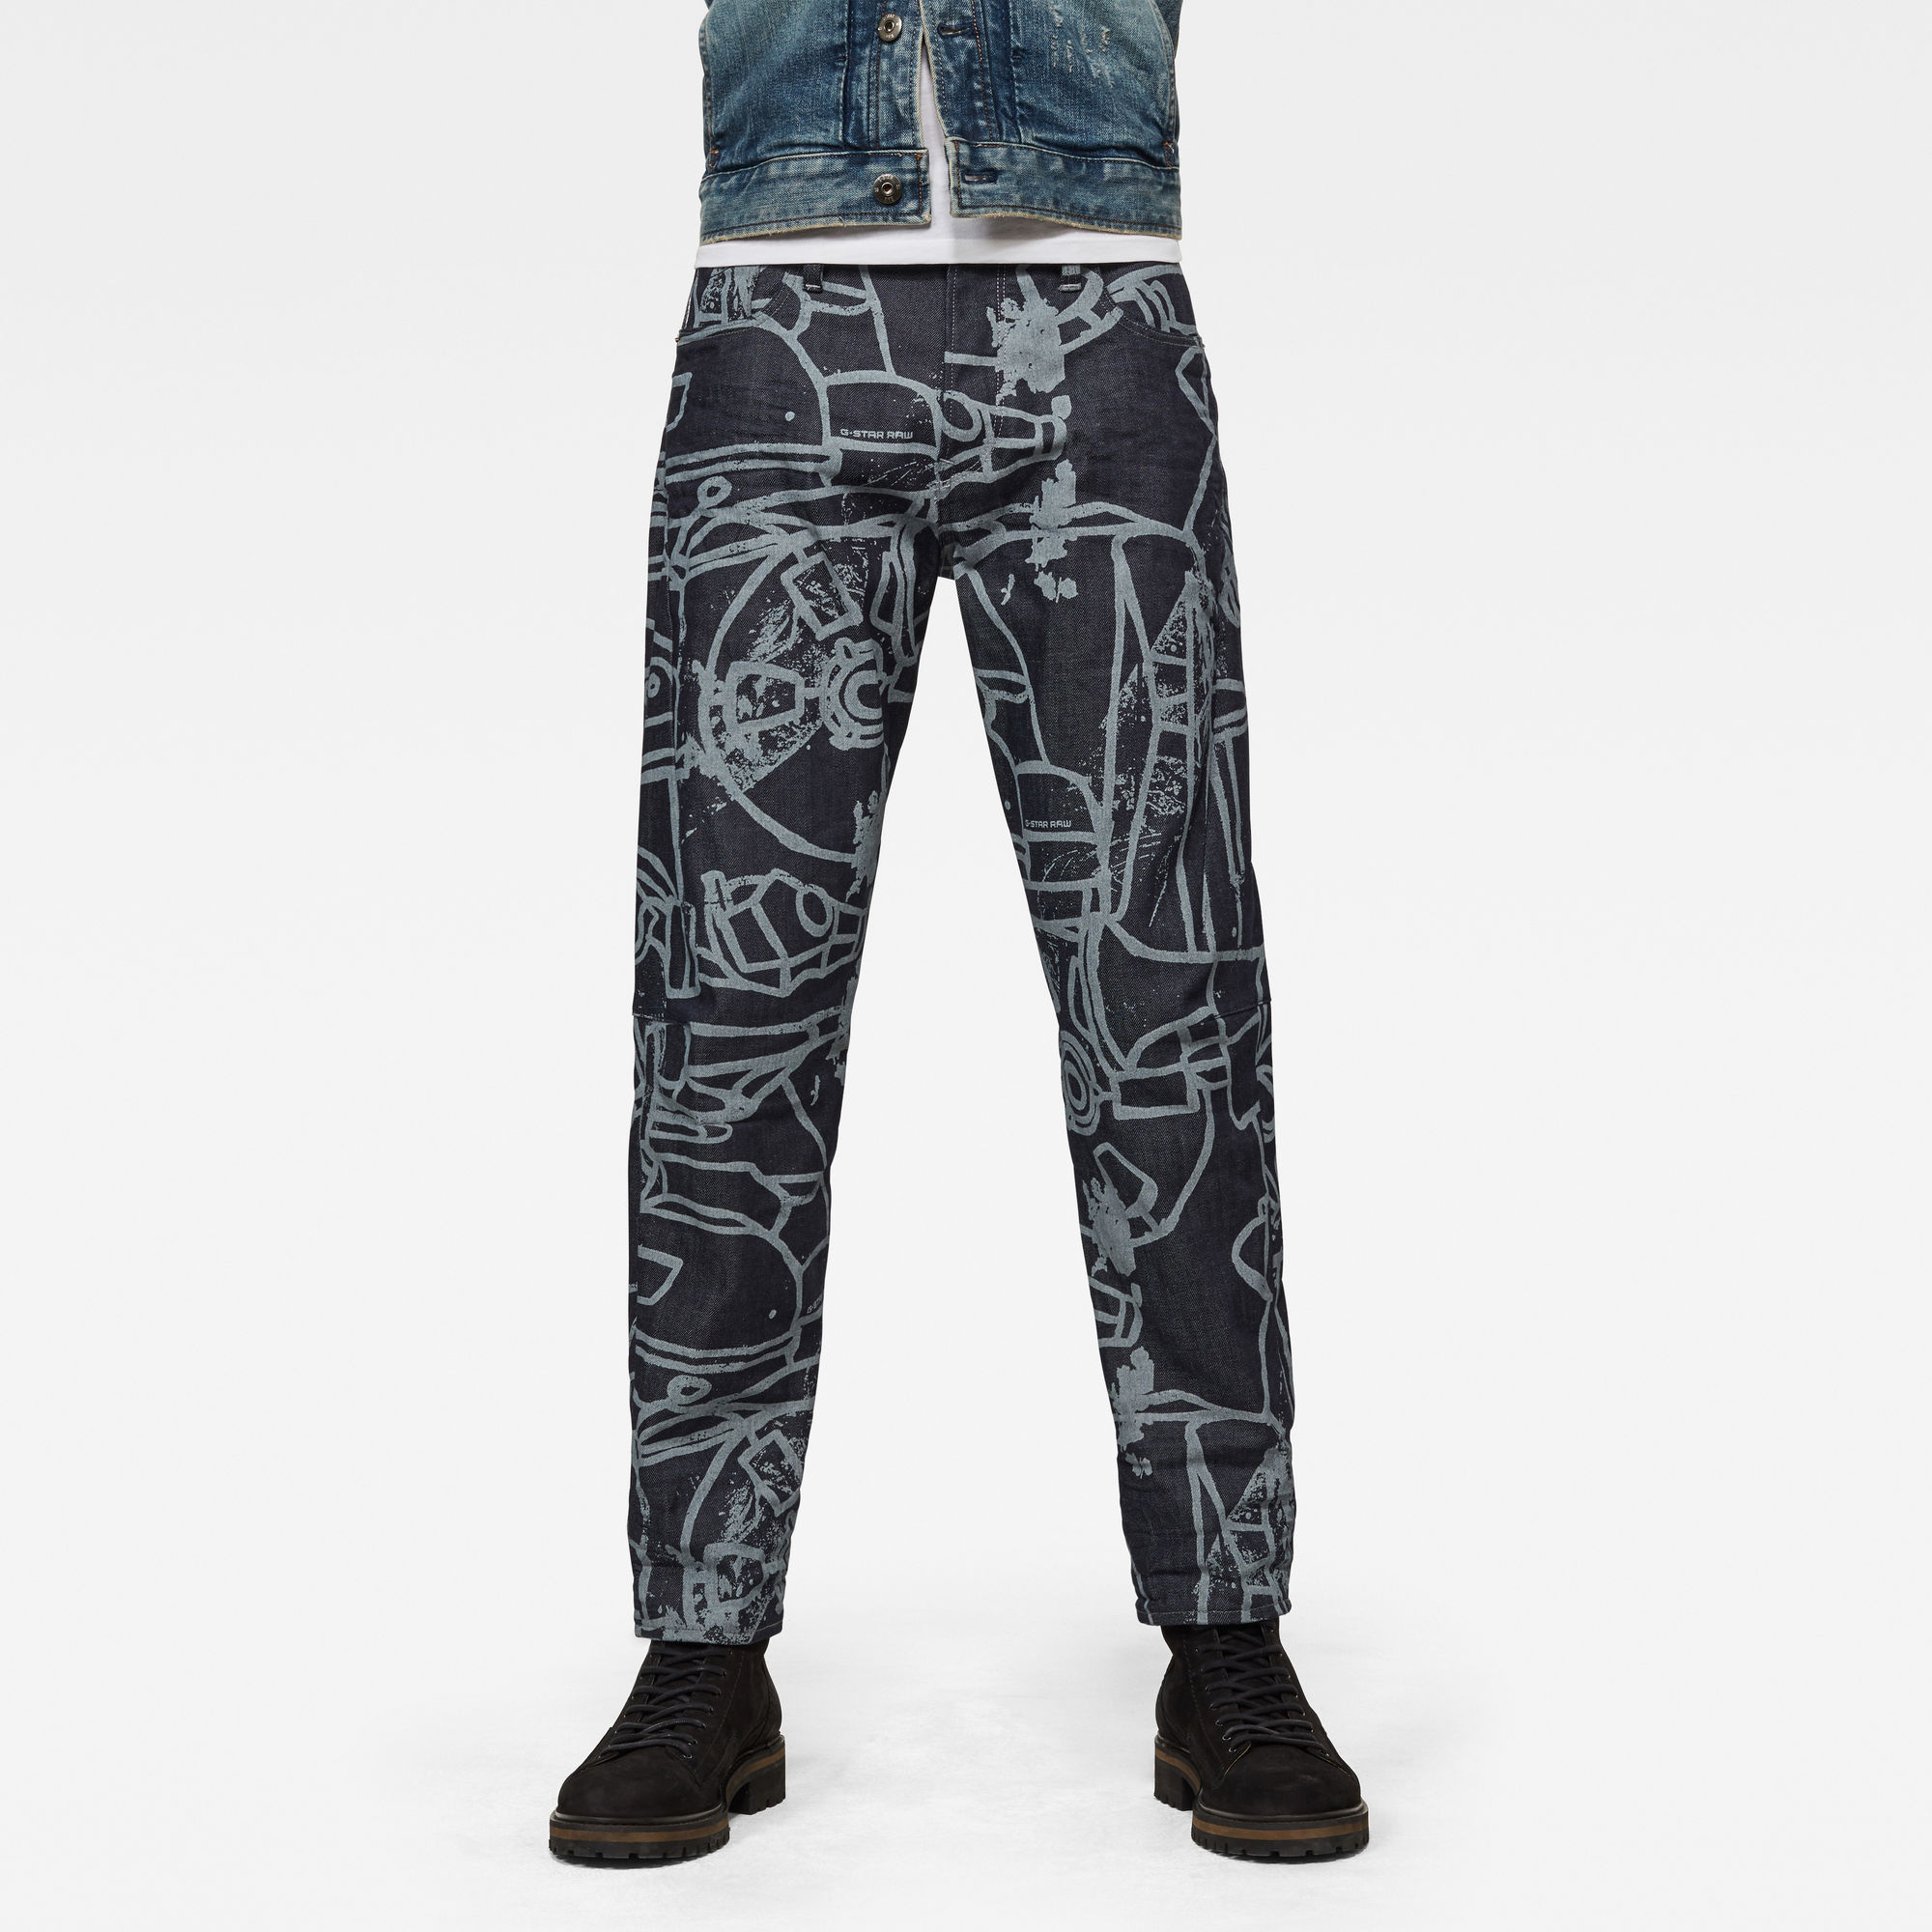 G-Star RAW Heren Scutar 3D Tapered Jeans Donkerblauw